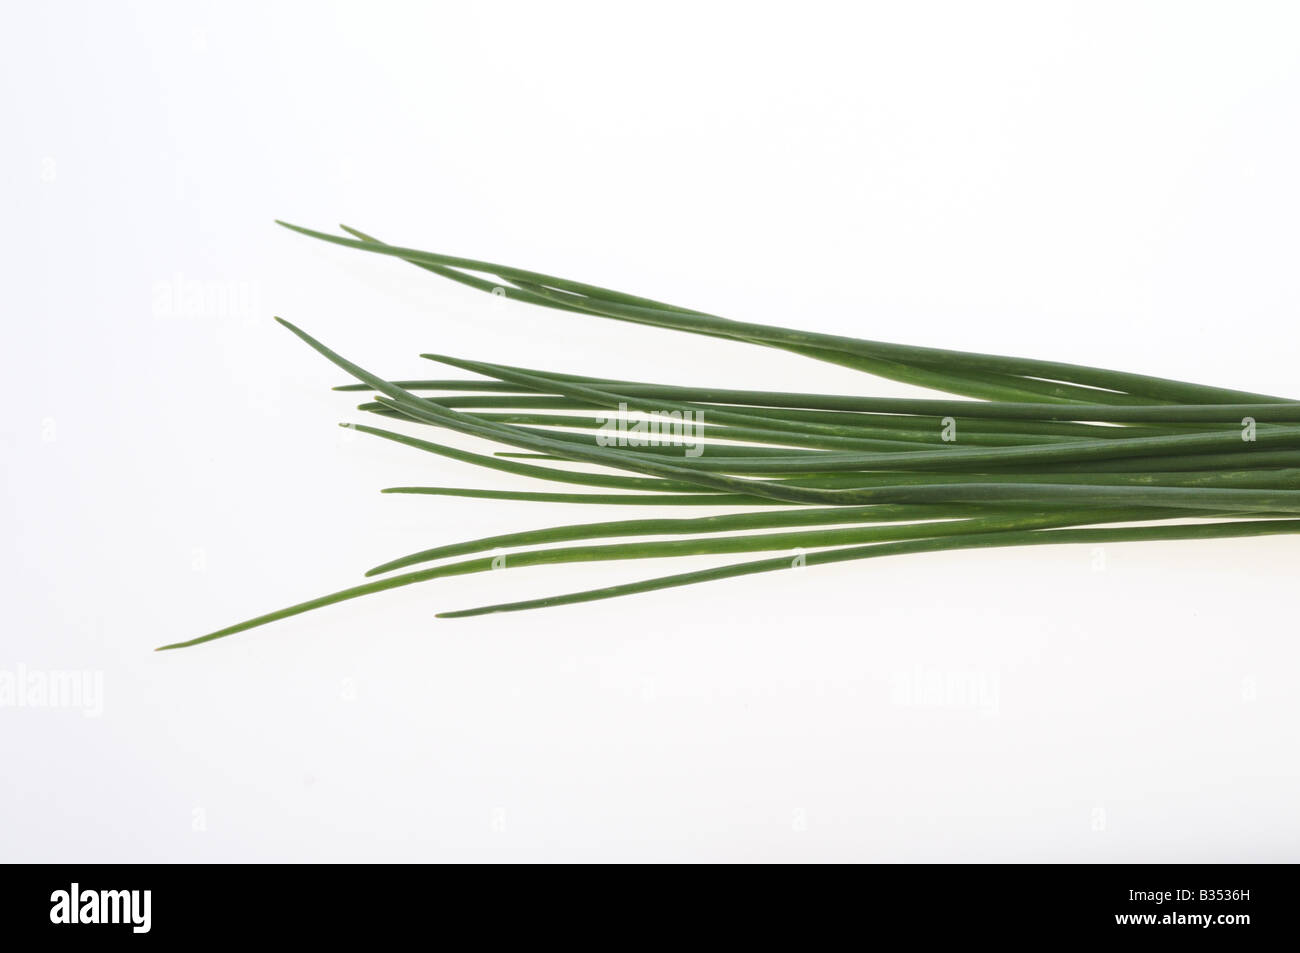 CULINARY HERBS HERB CHIVES Allium shoenoprasum related to the onion chives have milder flavour and the leaves are - Stock Image